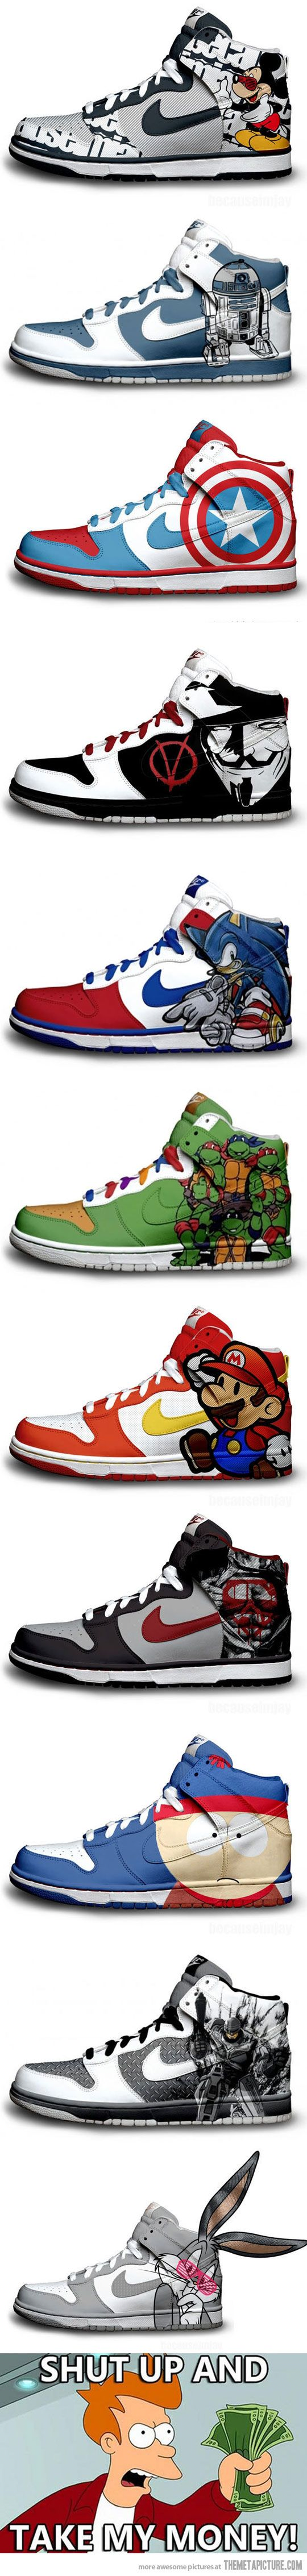 "Nike sneakers, geek designs | ""Geakers."""